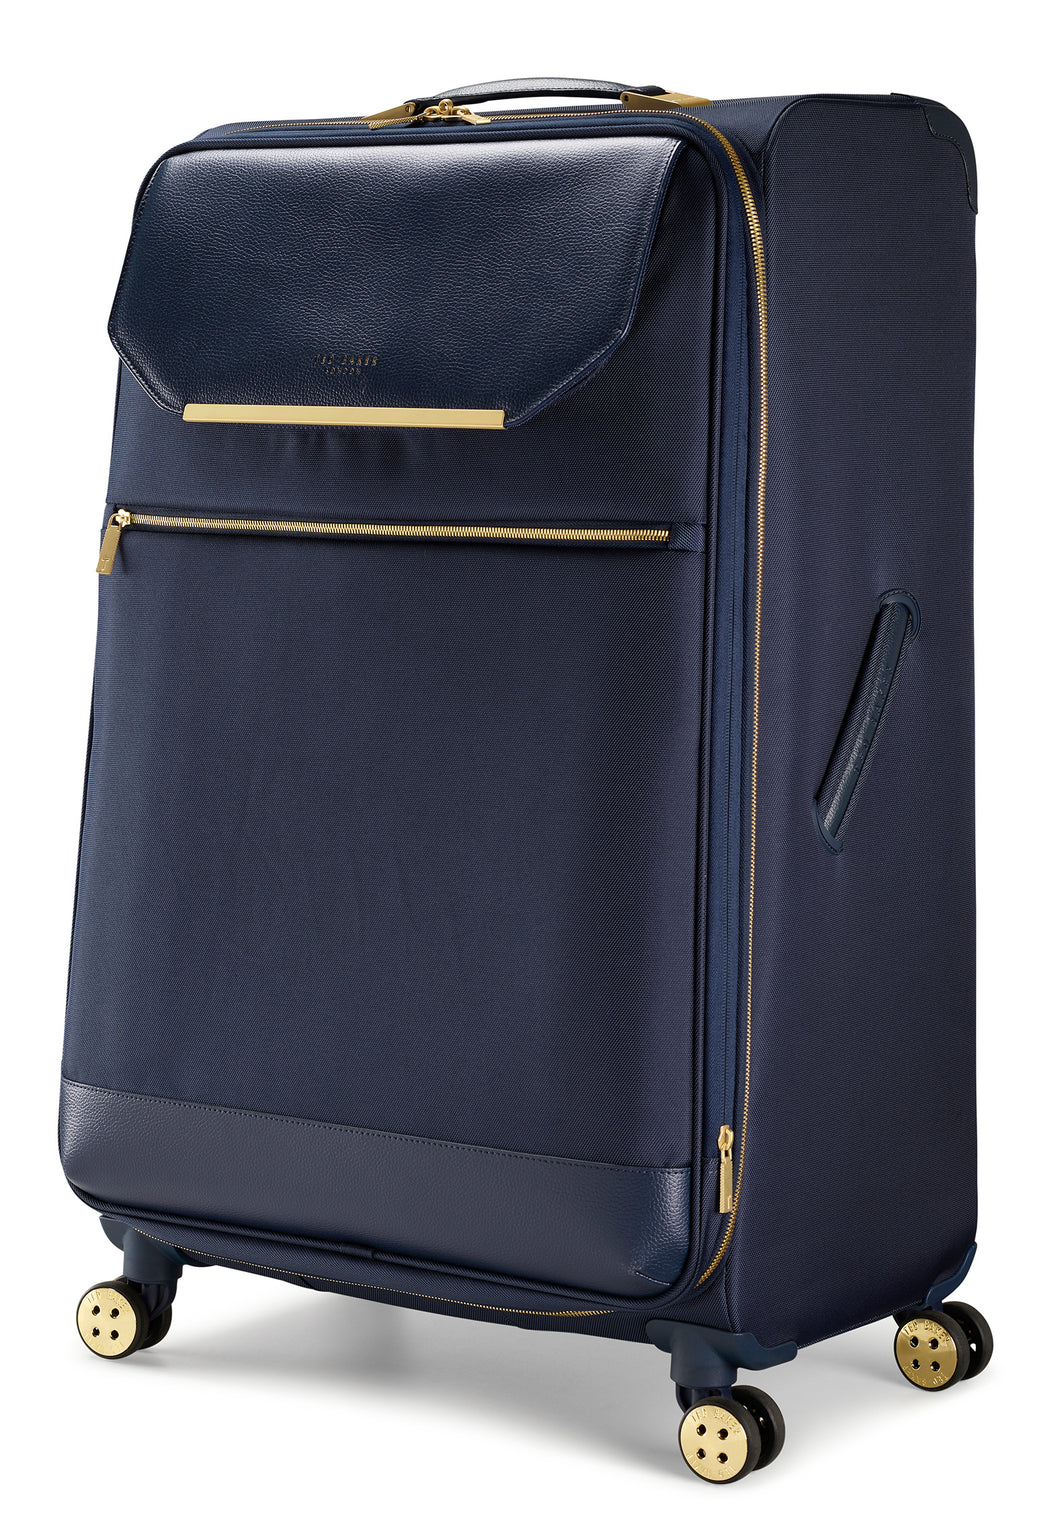 Ted Baker Albany in Navy Blue Large (80cm) 4 Wheel Suitcase